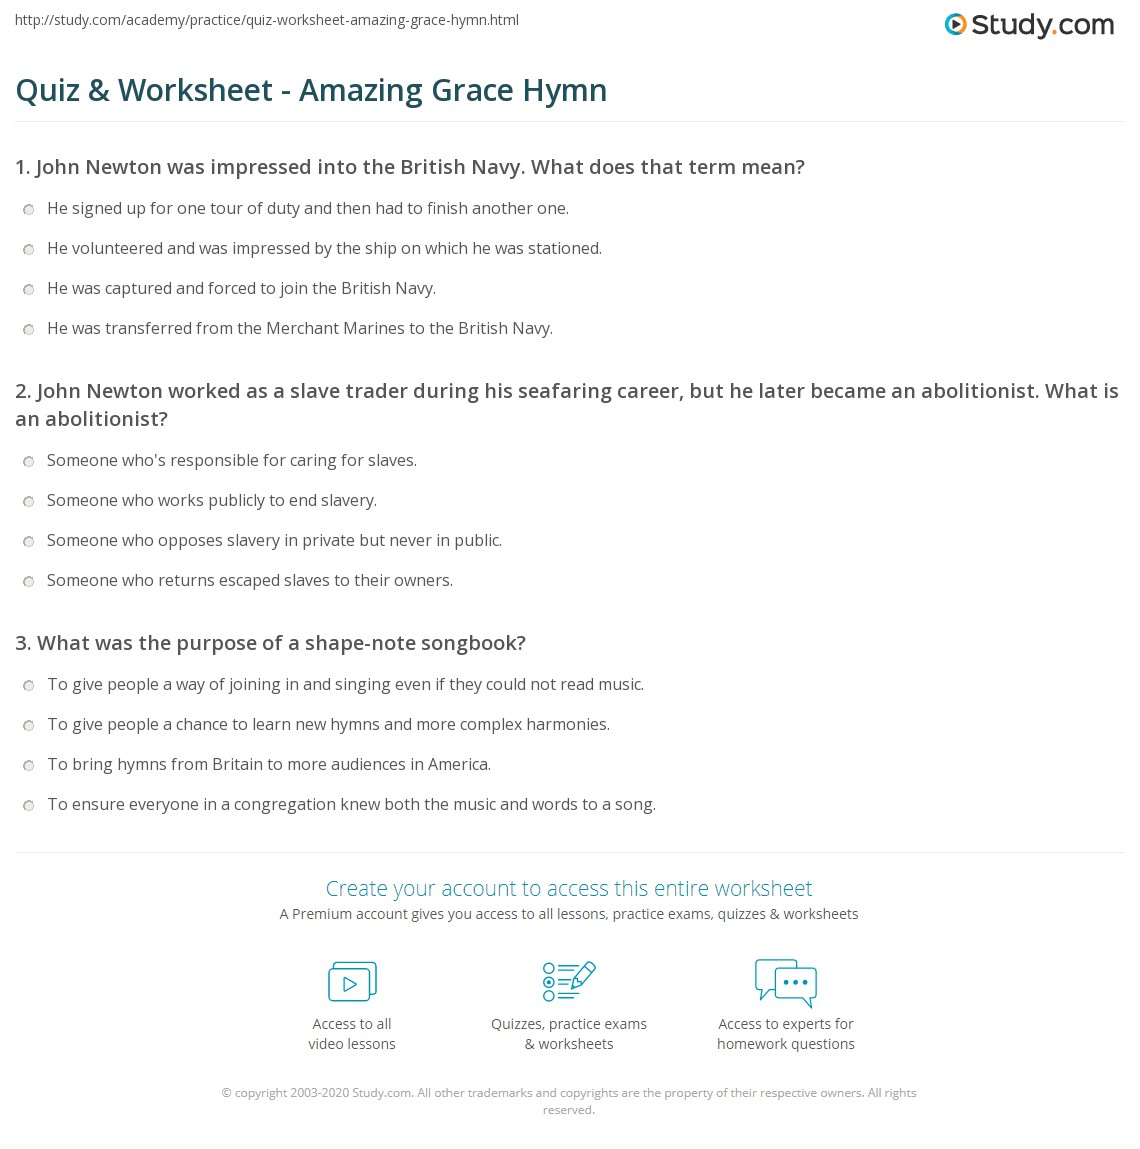 worksheet Amazing Worksheets quiz worksheet amazing grace hymn study com print song history meaning worksheet